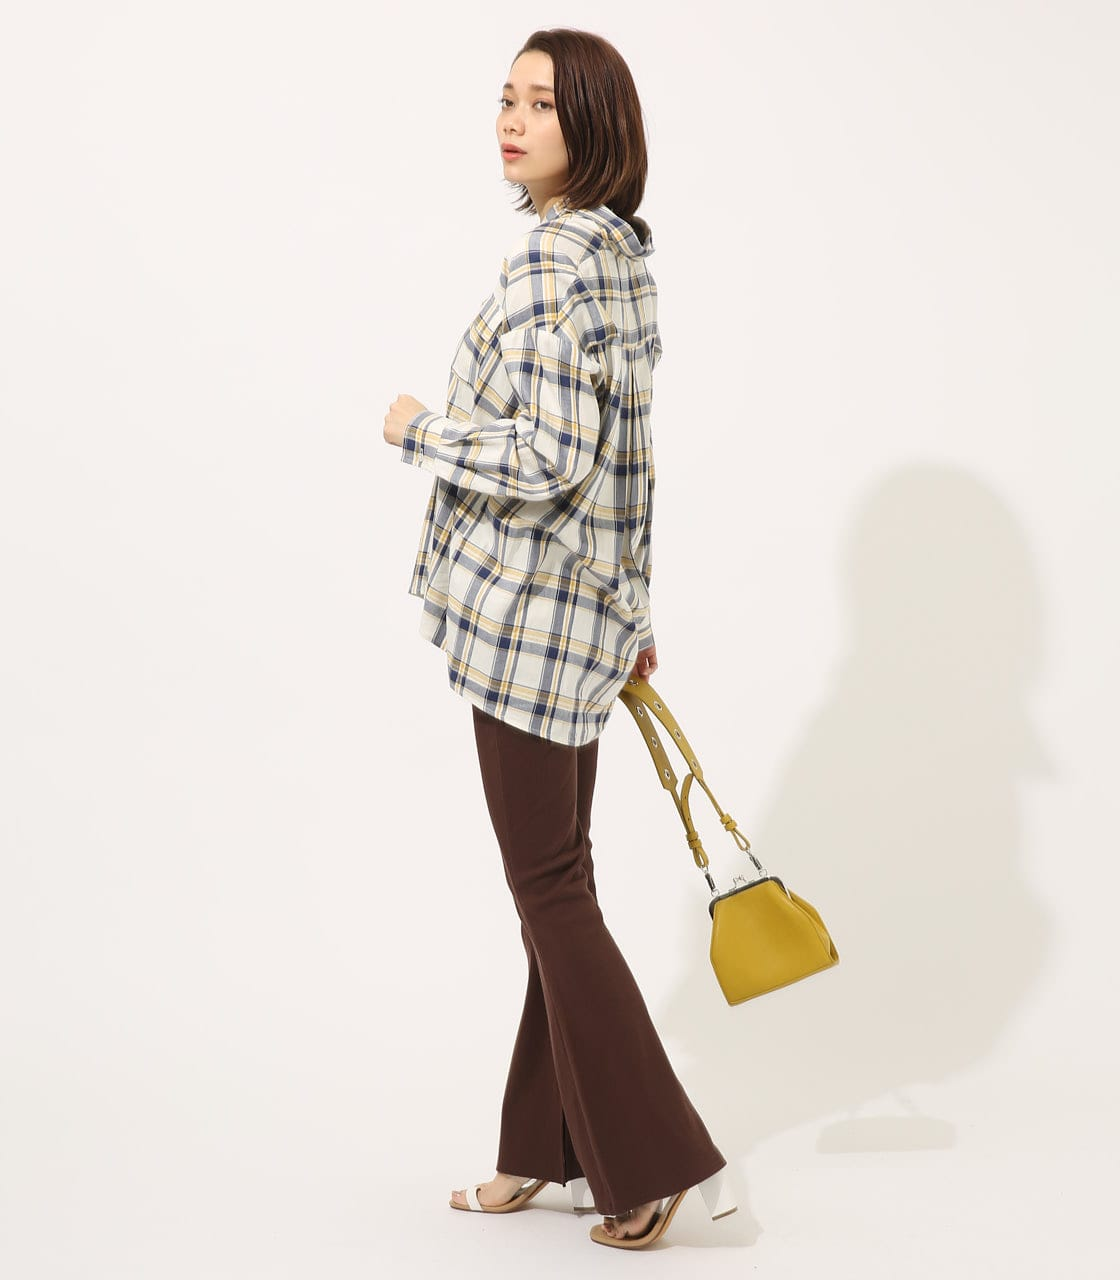 【AZUL BY MOUSSY】MADRAS CHECK SHIRT【MOOK50掲載 90135】 詳細画像 柄WHT 3